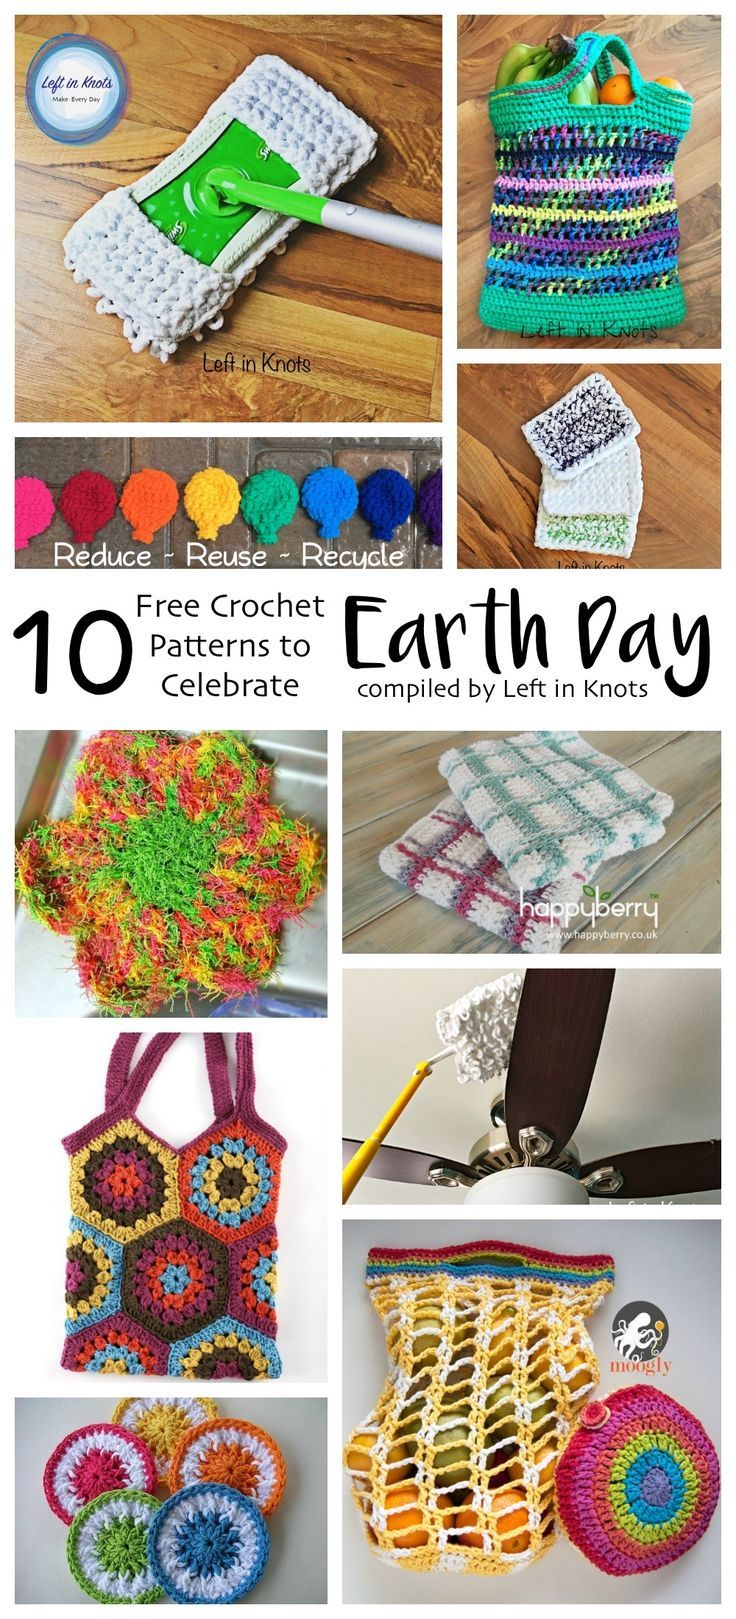 1377 best images about crochet roundup posts on pinterest for Reduce reuse recycle crafts